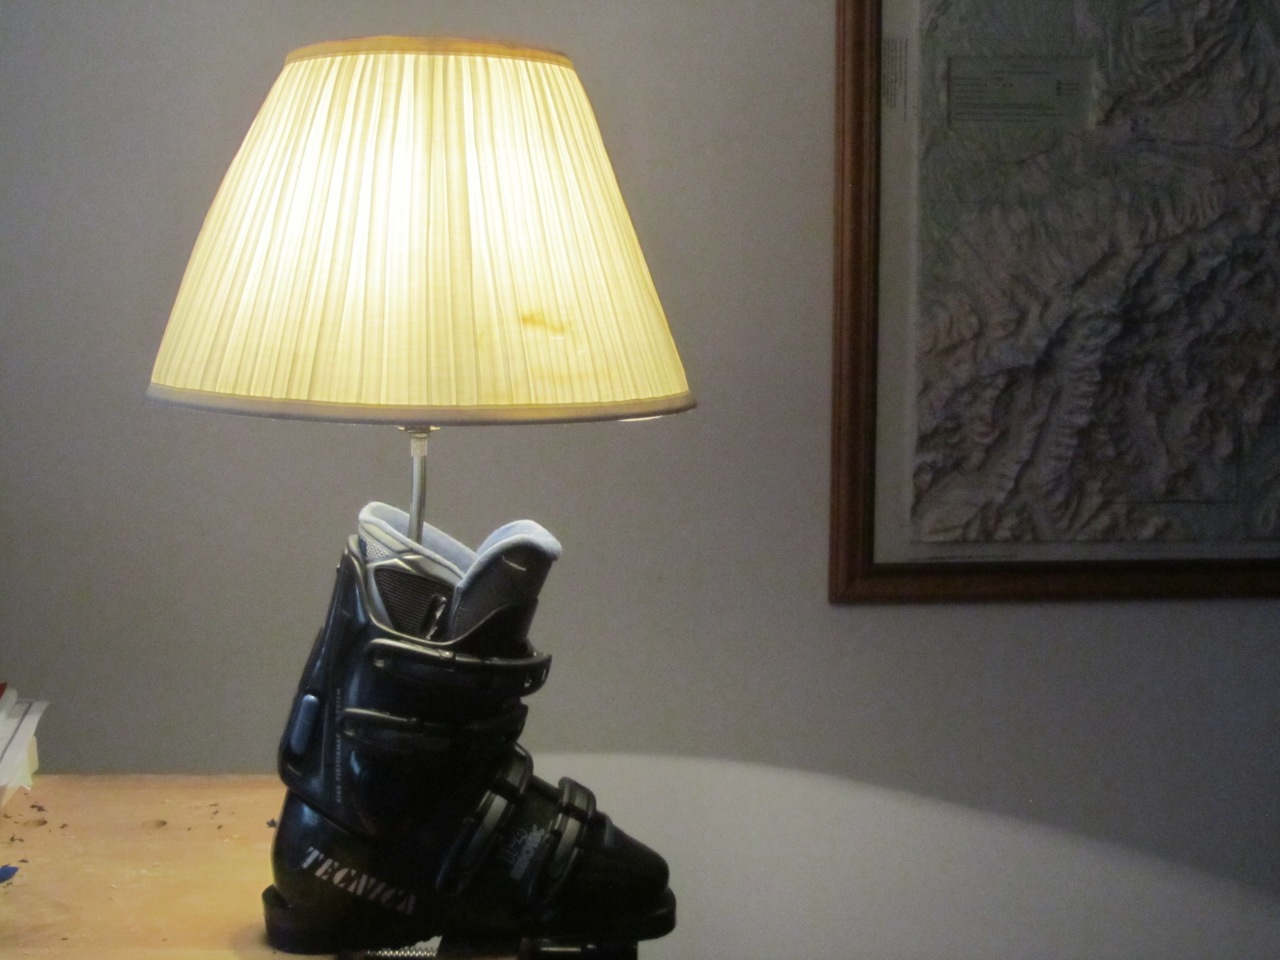 Made from a free pair of ski boots, a lamp from a thrift store for $3.00, a piece of scrap wood fitted into the boot wit a hole drilled into it , and new Westinghouse nut and washers from Home Depot.